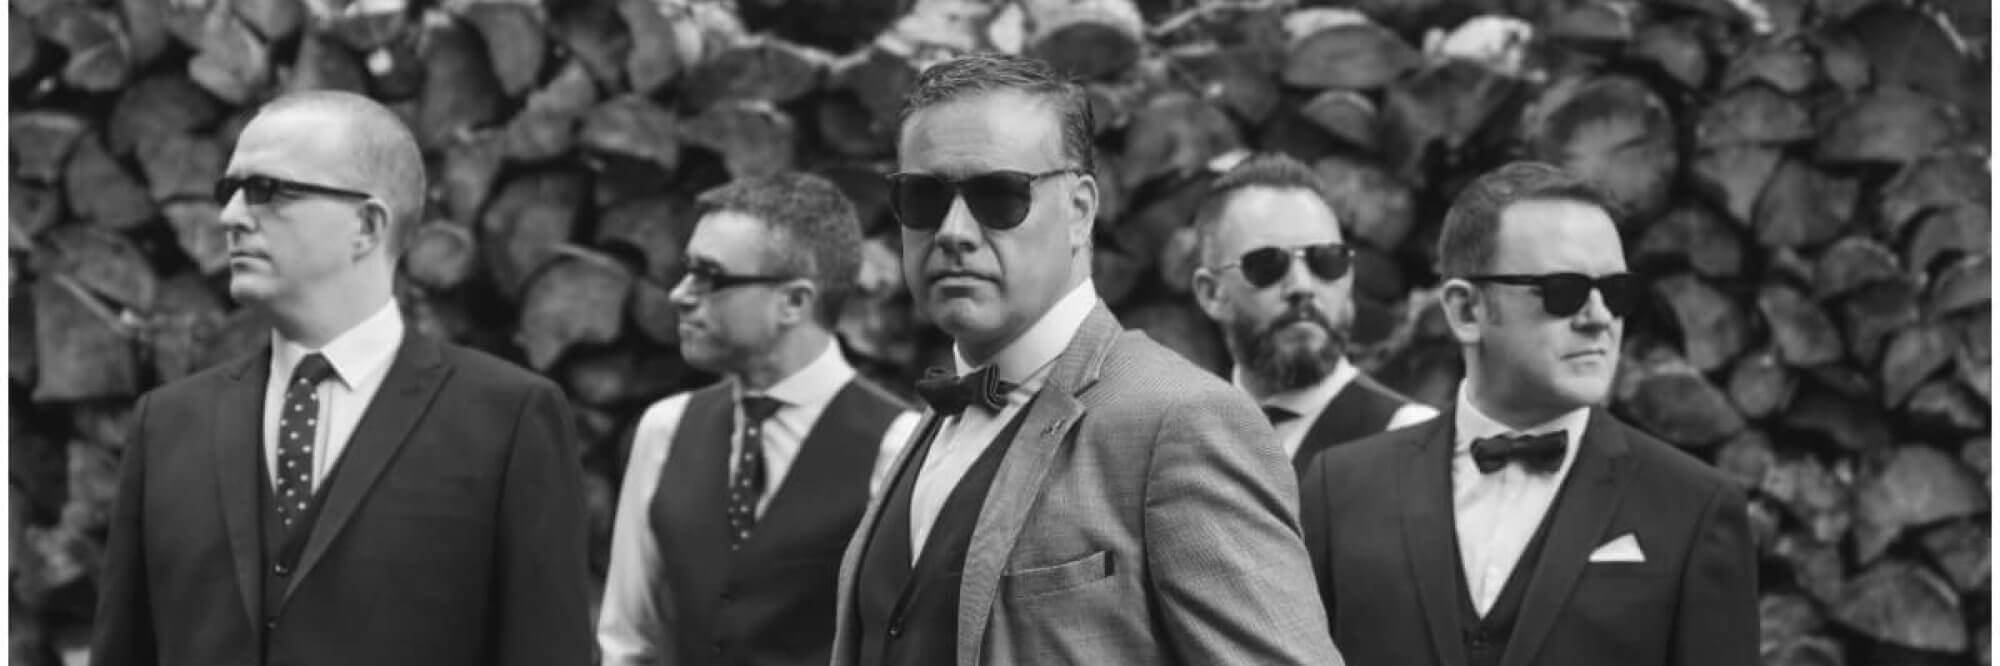 Wedding Bands Ireland | The Jukebox Kings Dublin Wedding Band & DJ